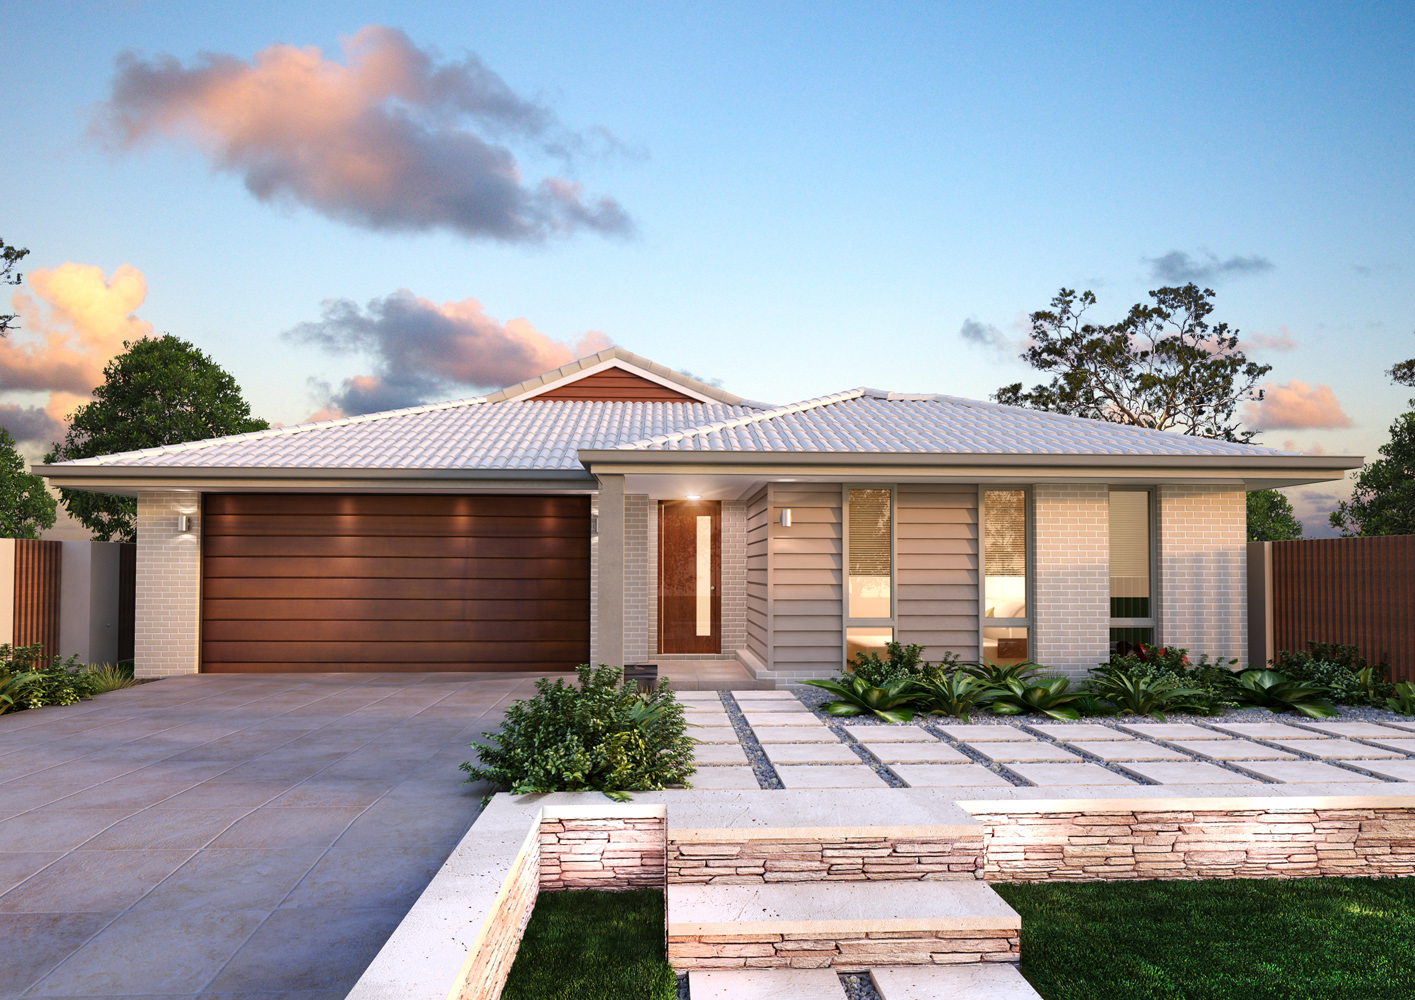 New Home Design Aspire | Perry Homes Builder NSW | QLD